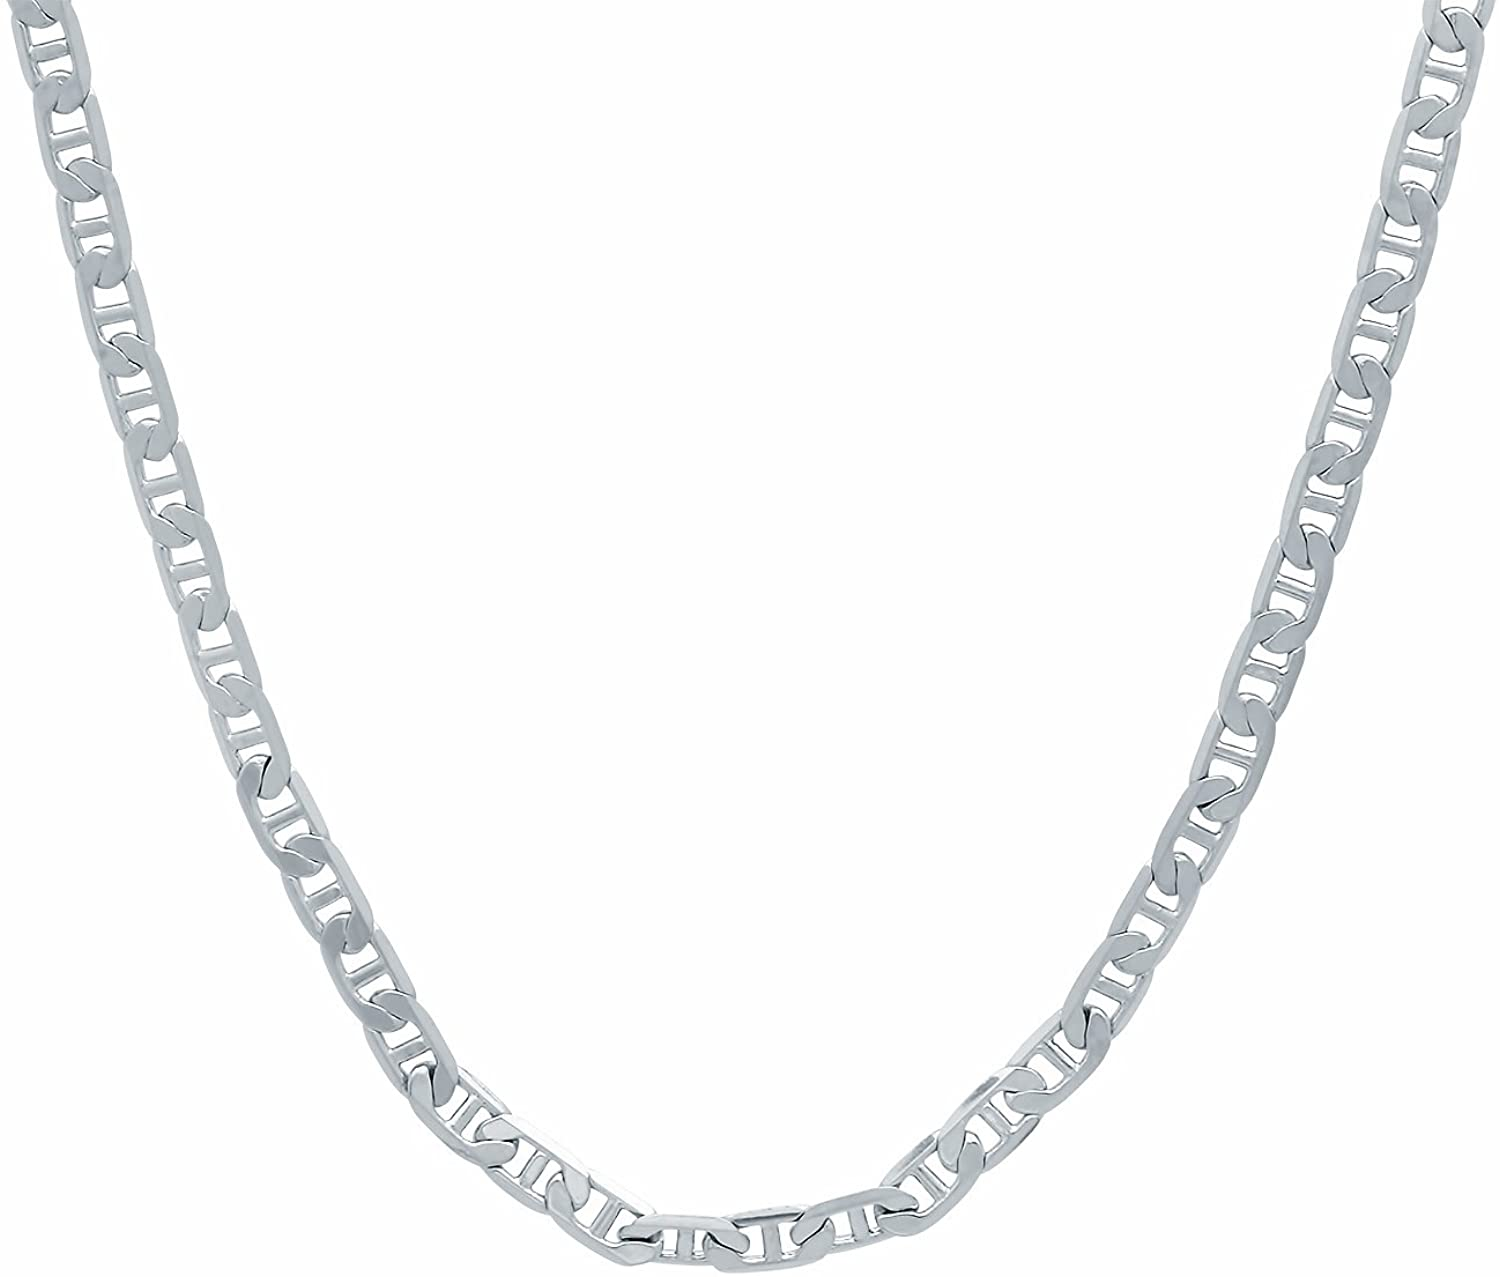 The Bling Factory 3.2mm High-Polished 0.25 mils (6 microns) Rhodium Plated Flat Mariner Chain Necklace, 16'-30